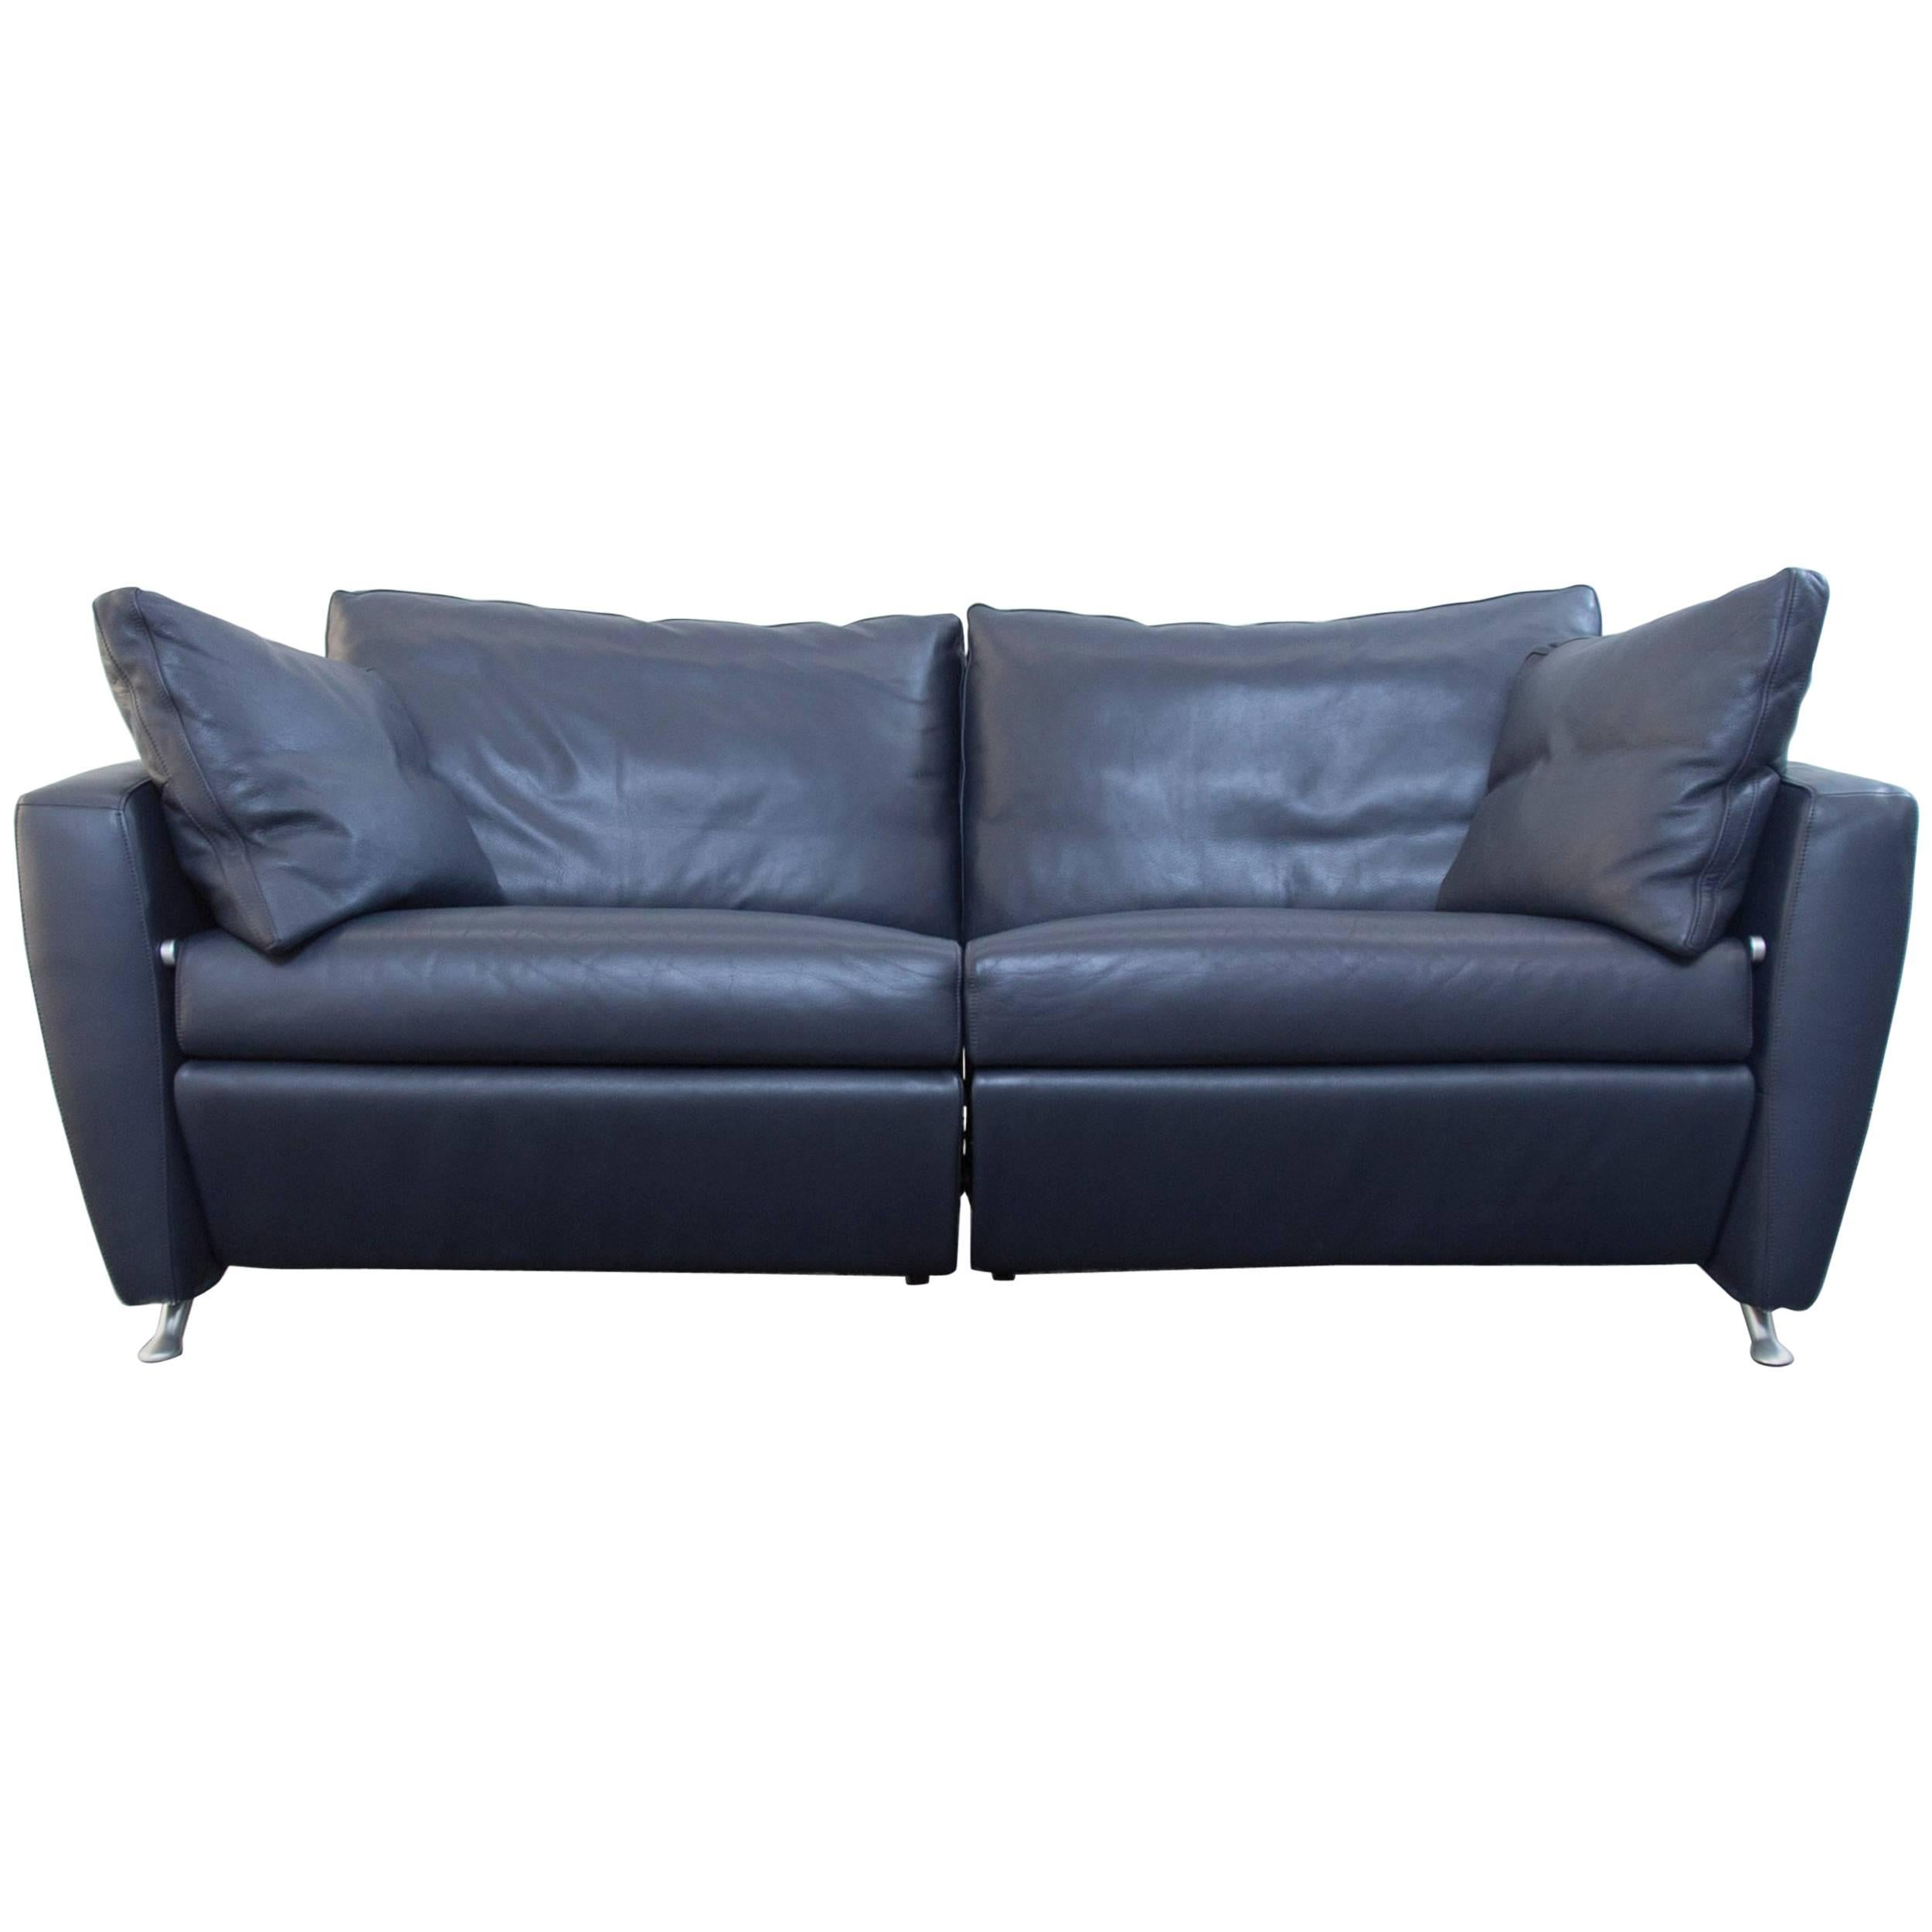 Fsm Designer Sofa Leather Blue Two Seat Couch Relax Function Modern